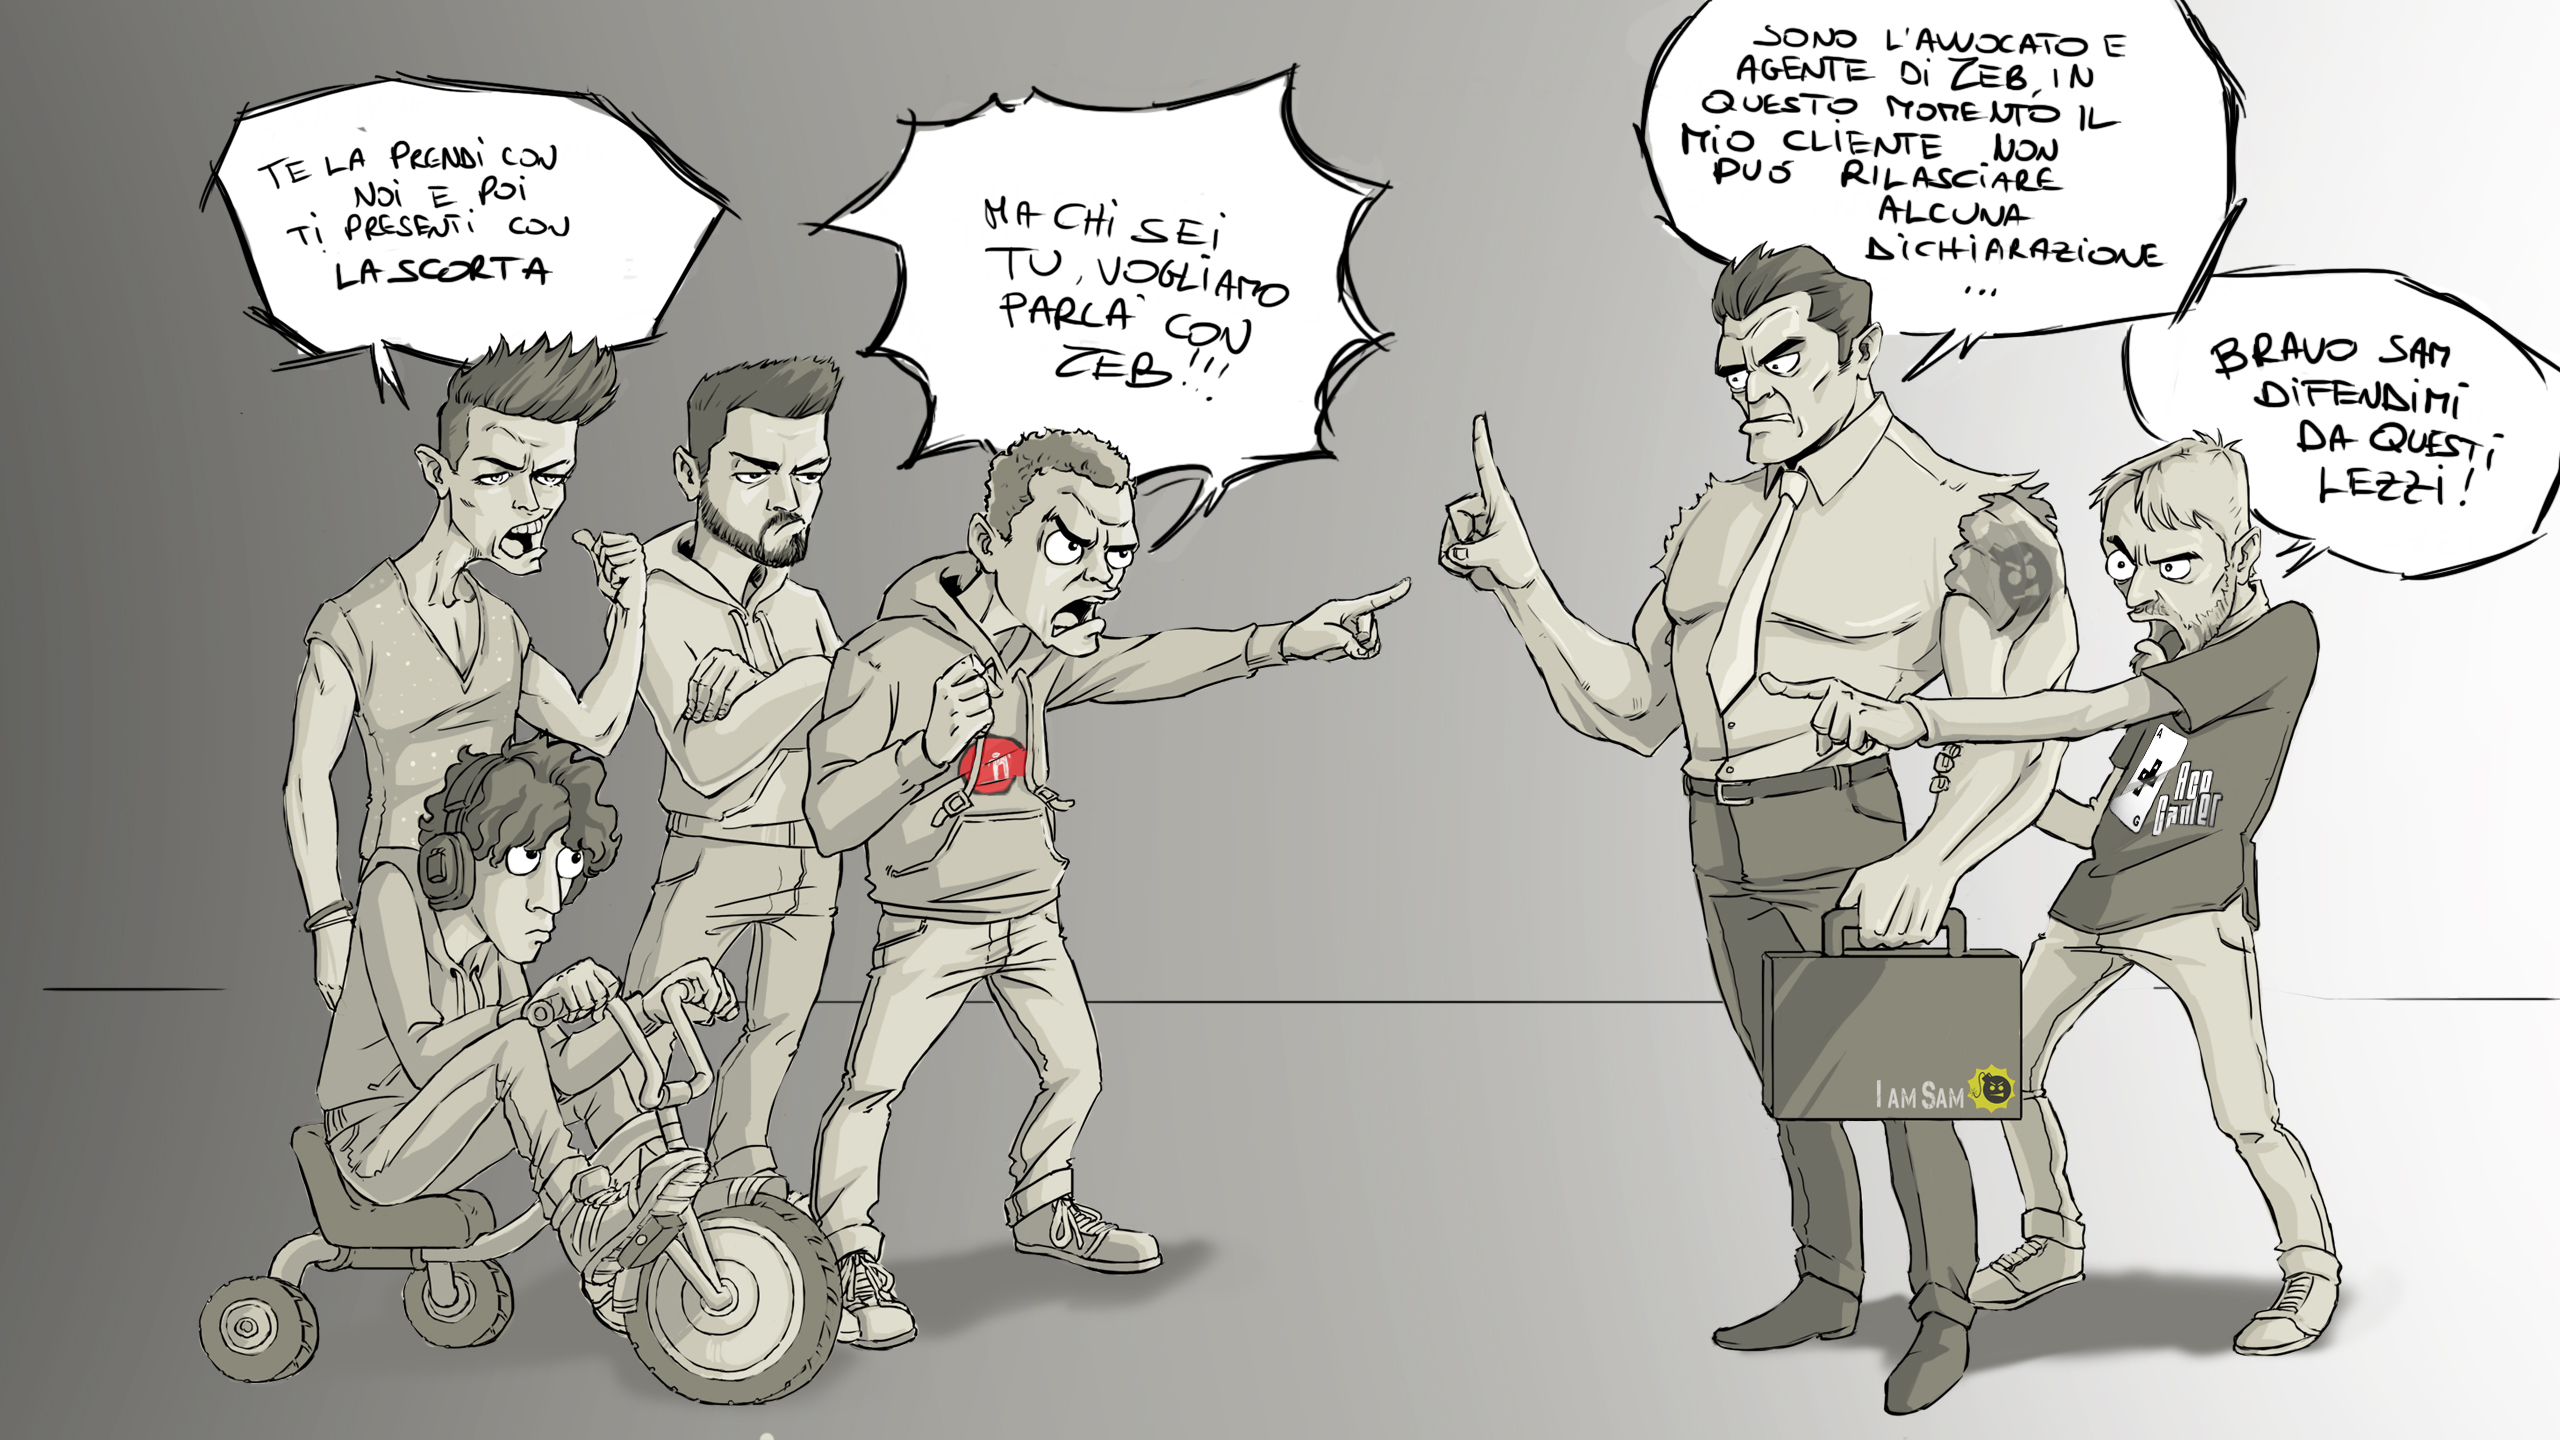 Armata Casadei VS Zeb89 by BobanPesov on DeviantArt